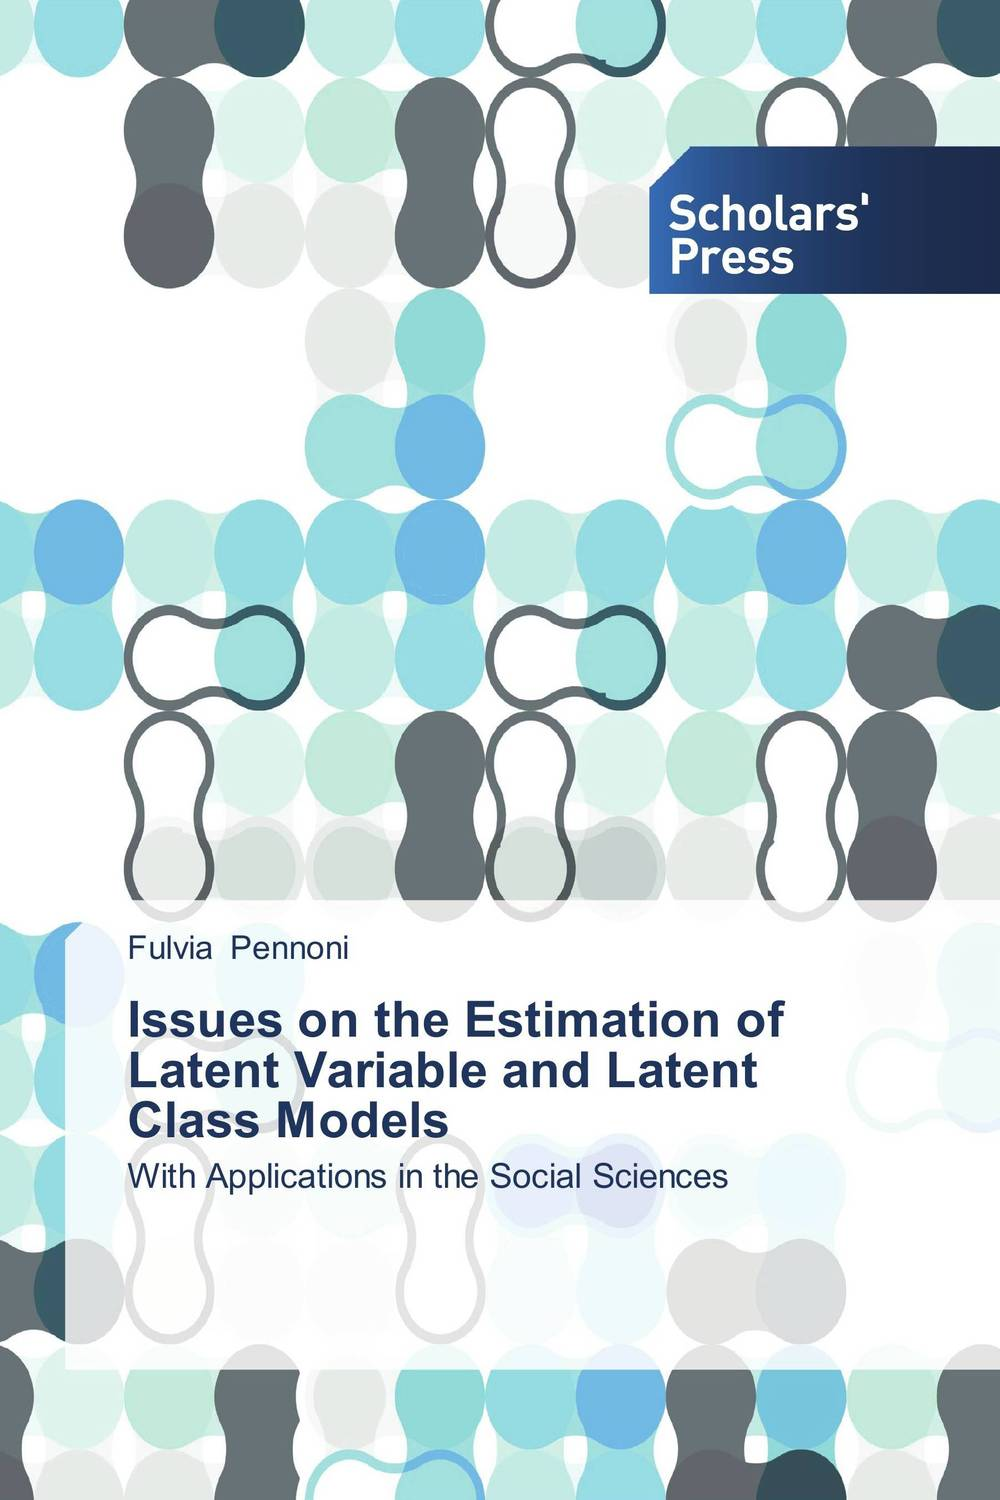 Issues on the Estimation of Latent Variable and Latent Class Models